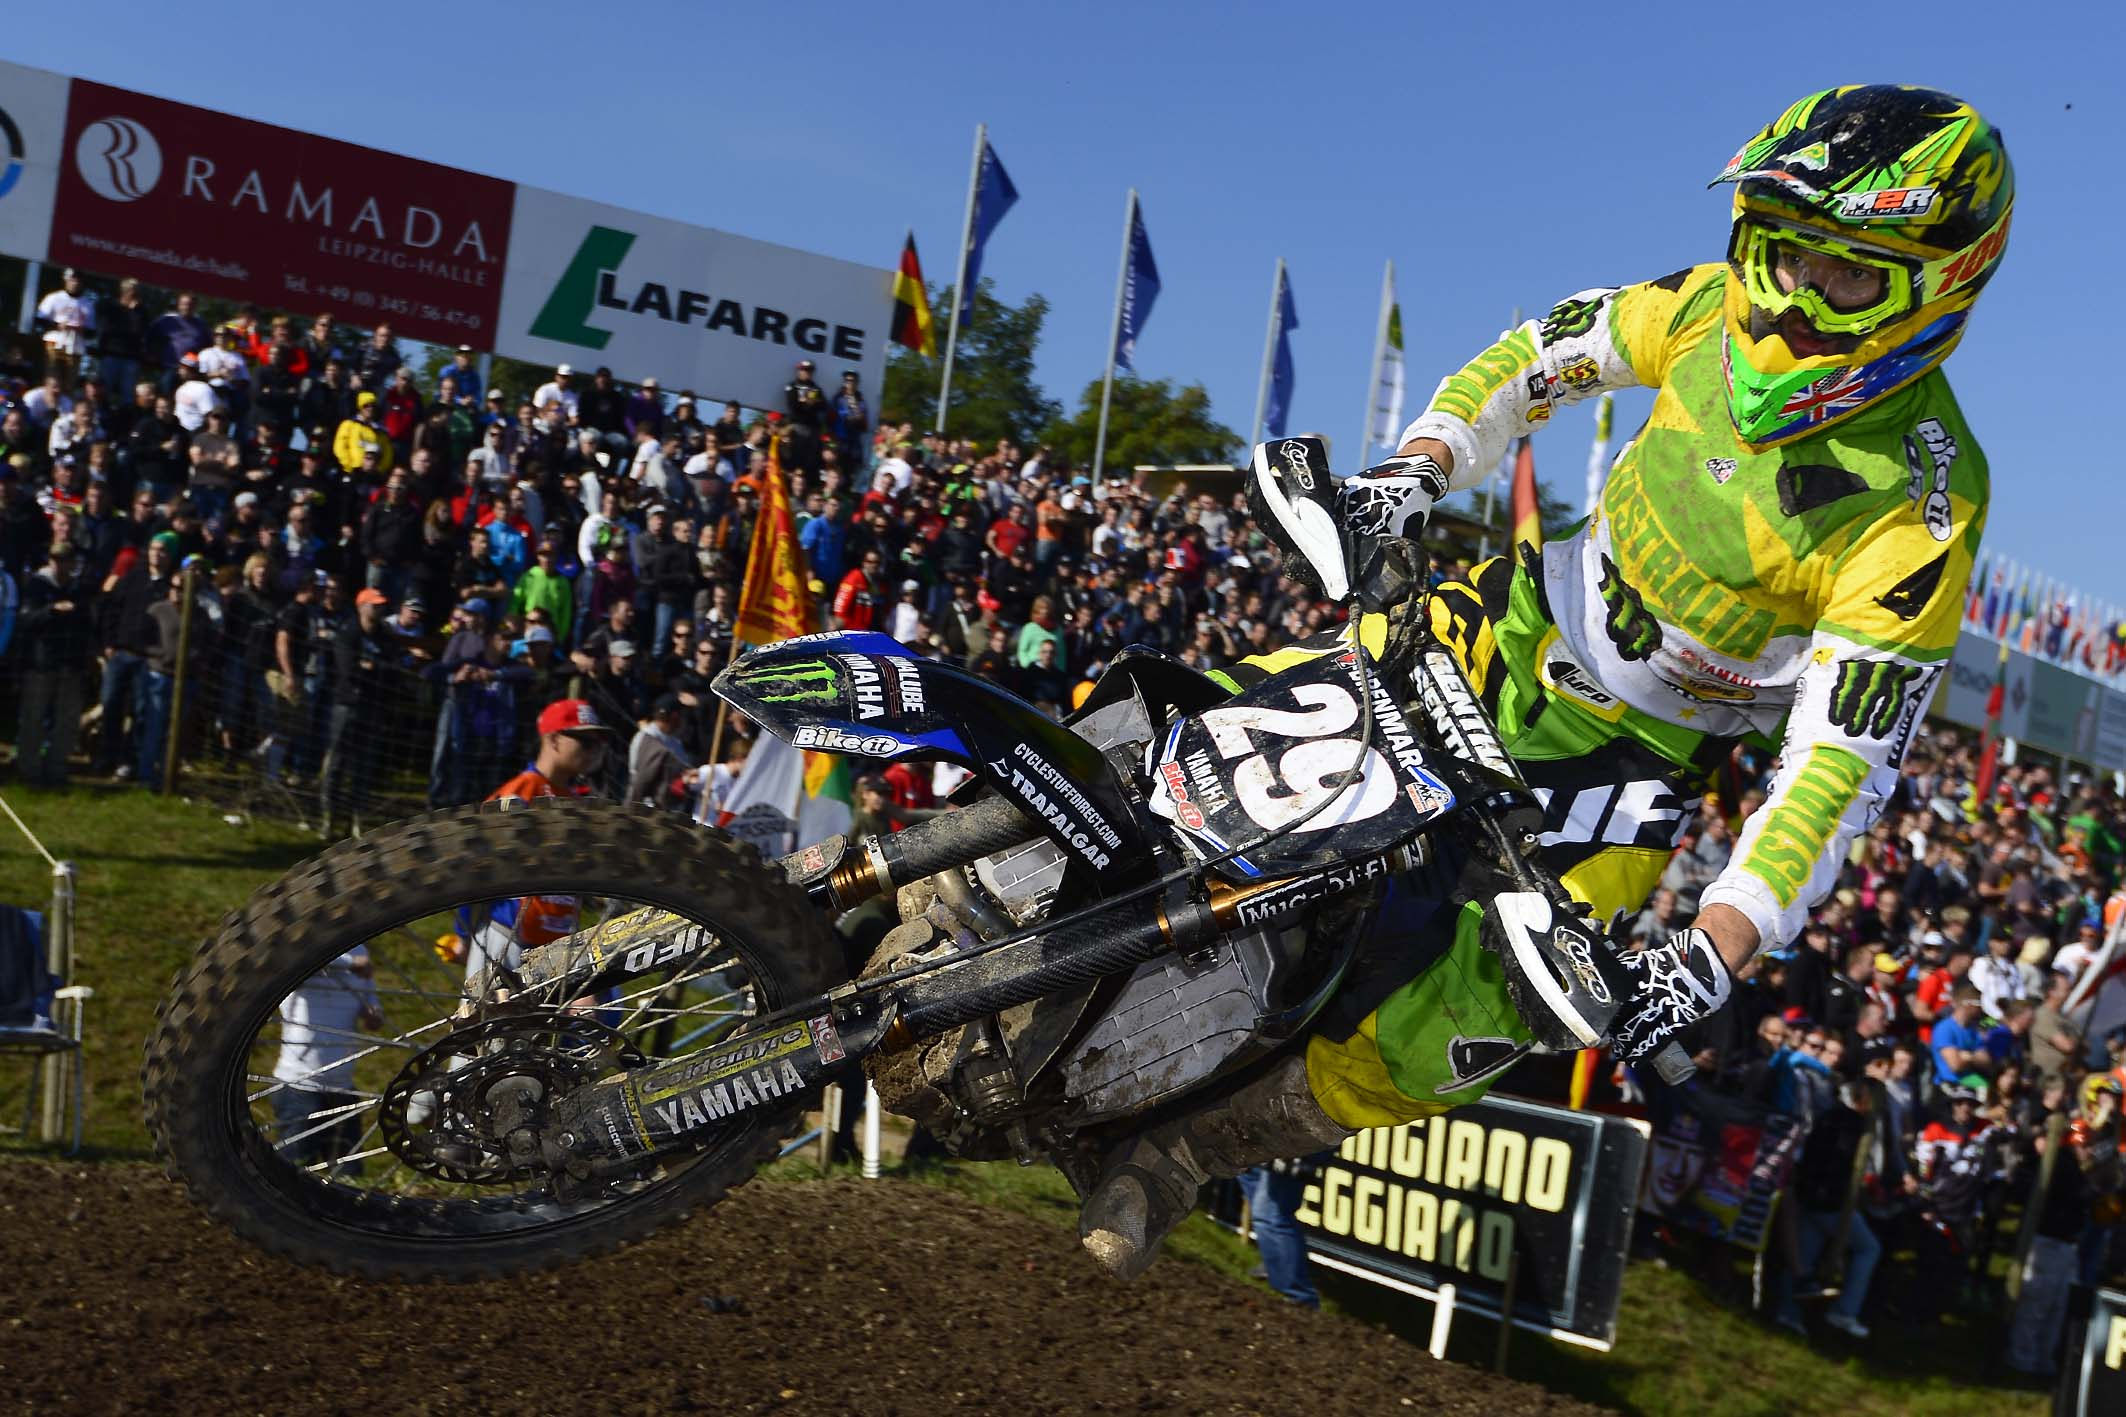 Dean Ferris shines at 2013 Motocross of Nations